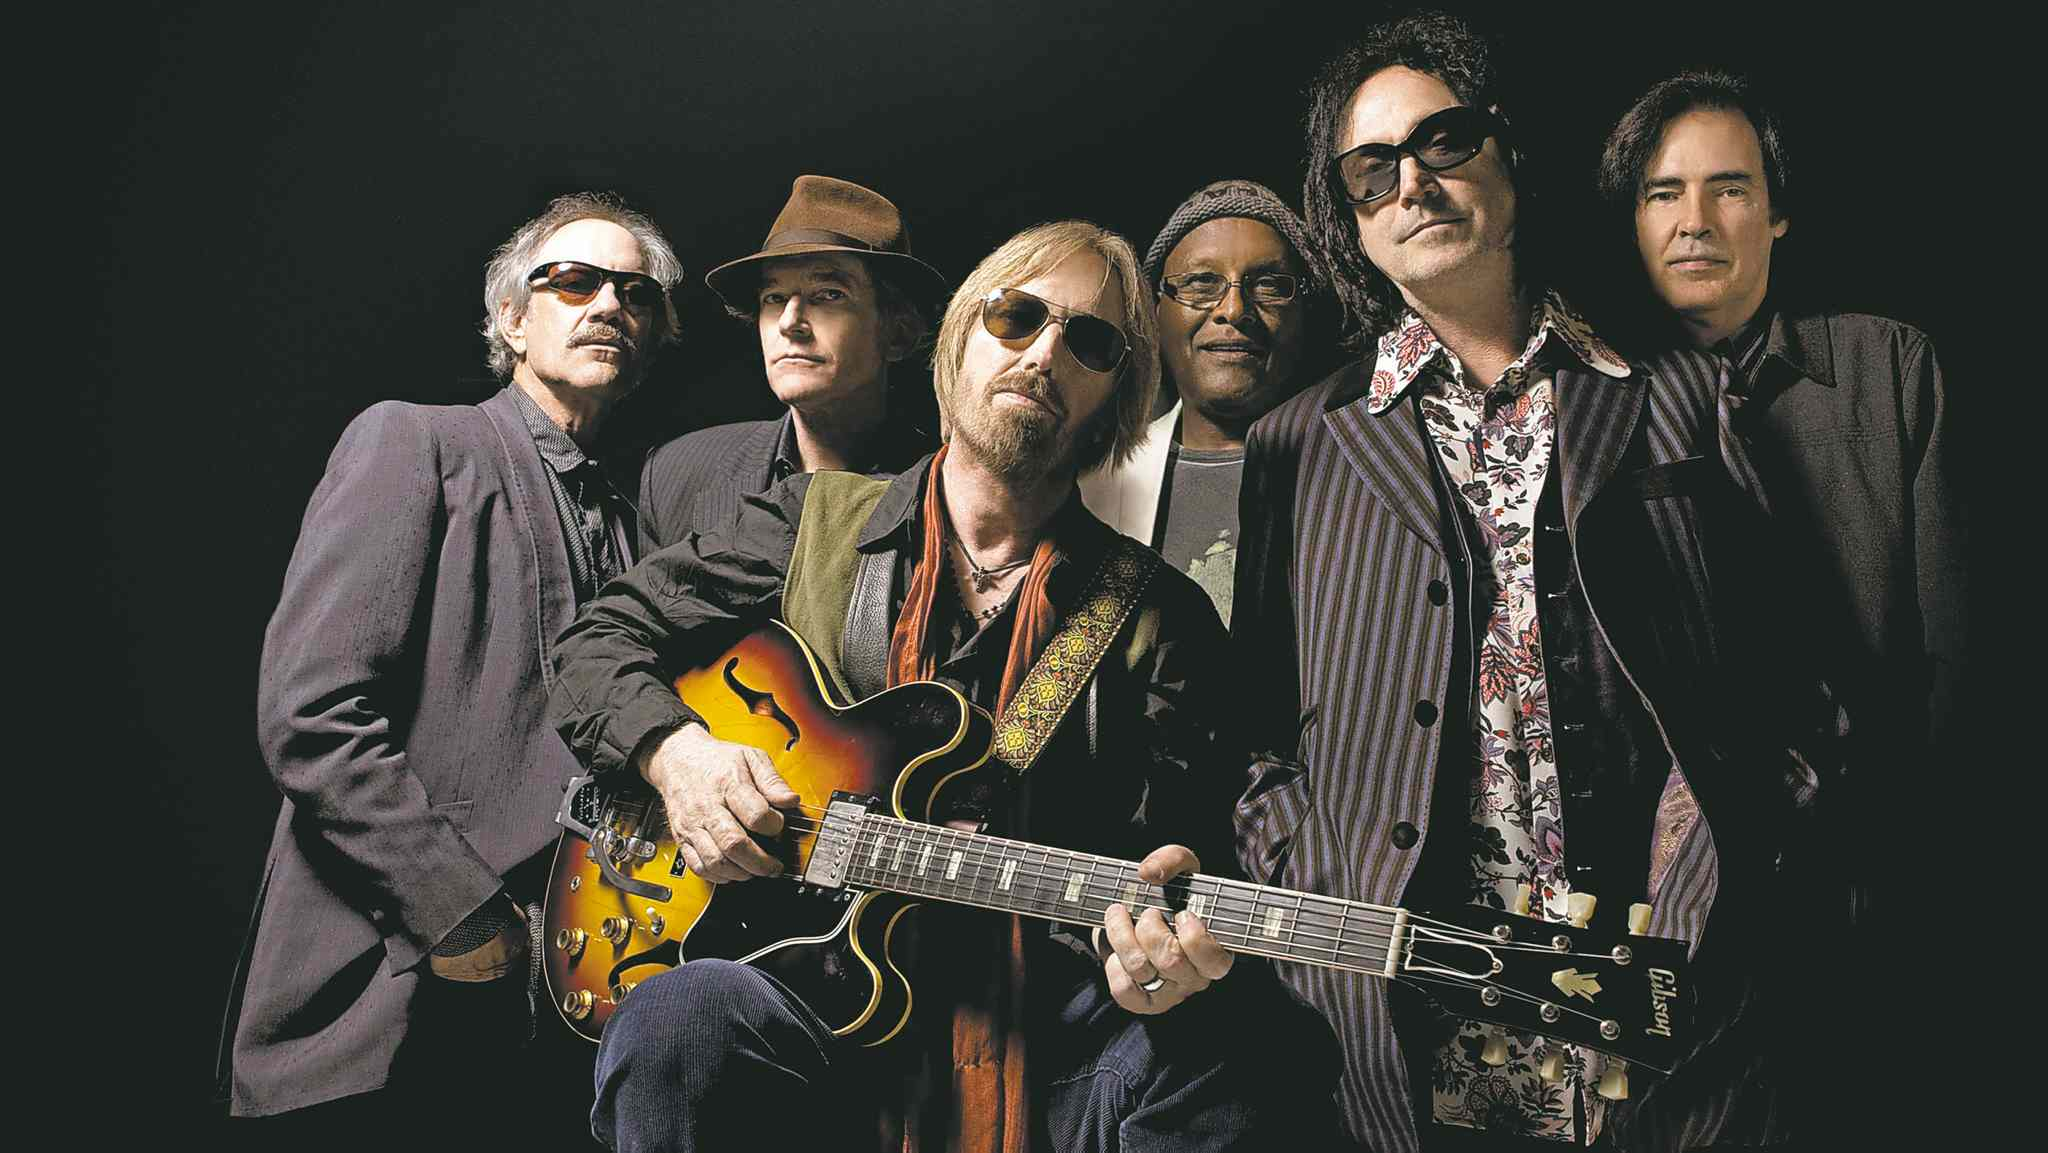 Tom Petty and the Heartbreakers' new album is their first to debut at No. 1 on the Billboard chart.